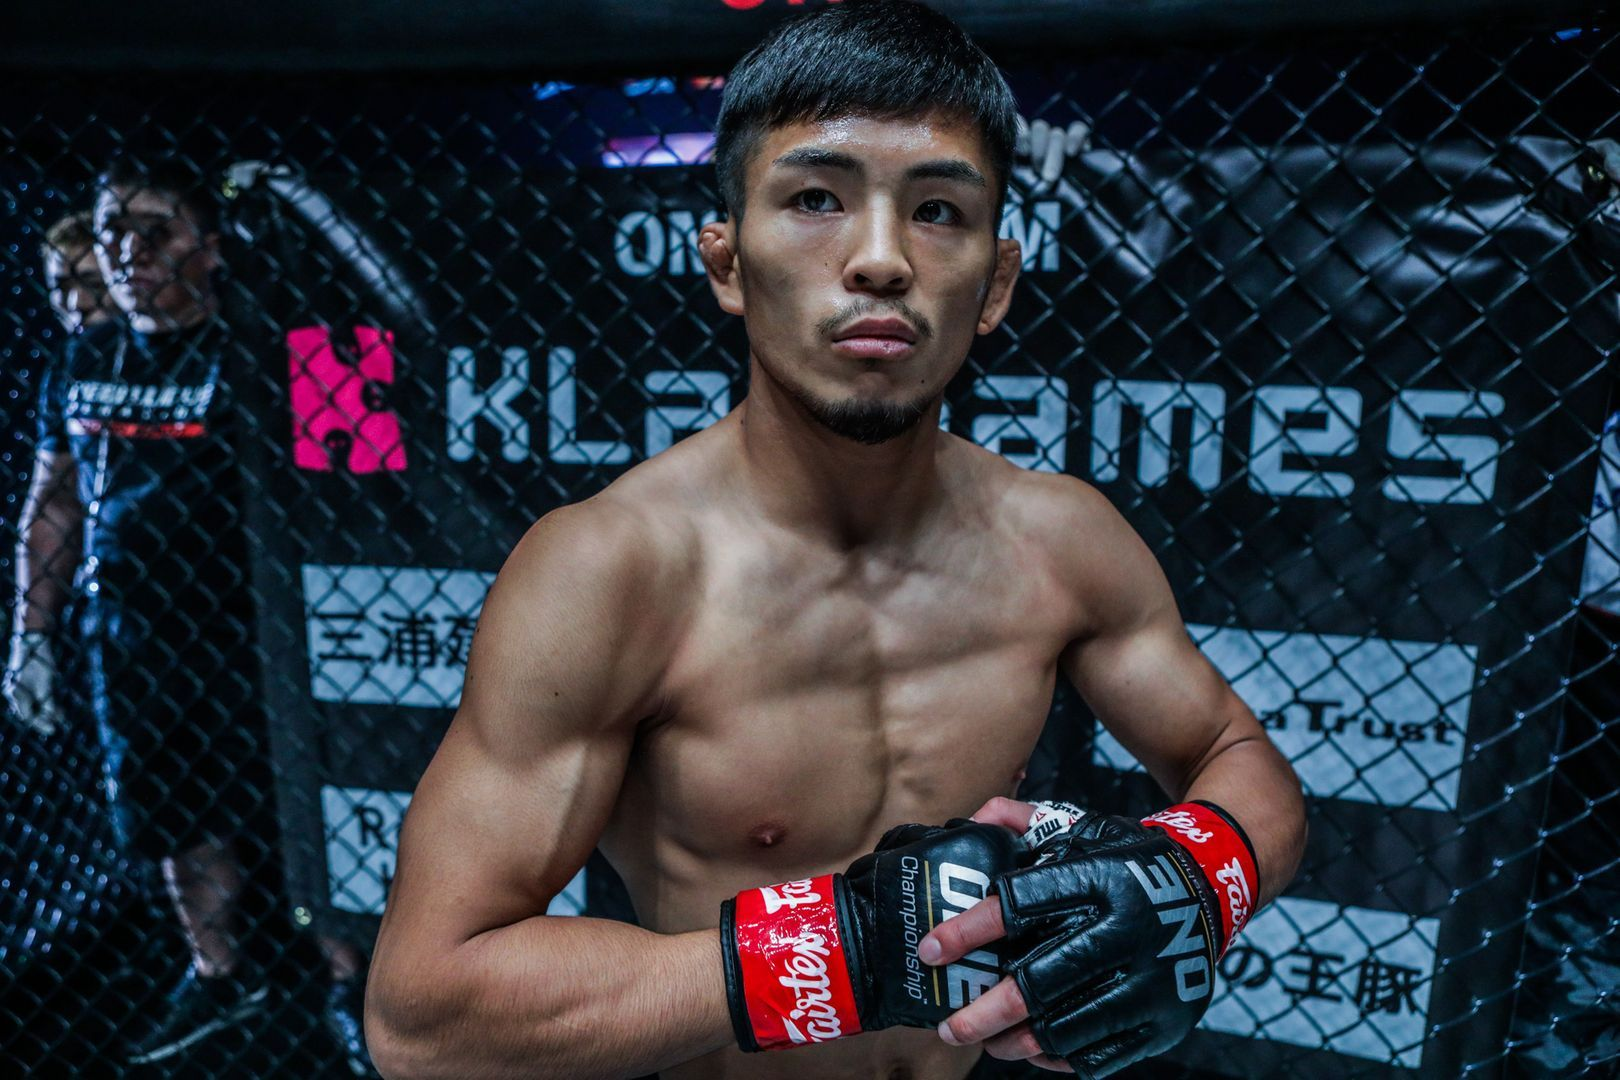 Japanese MMA fighter Yuya Wakamatsu is ready for action